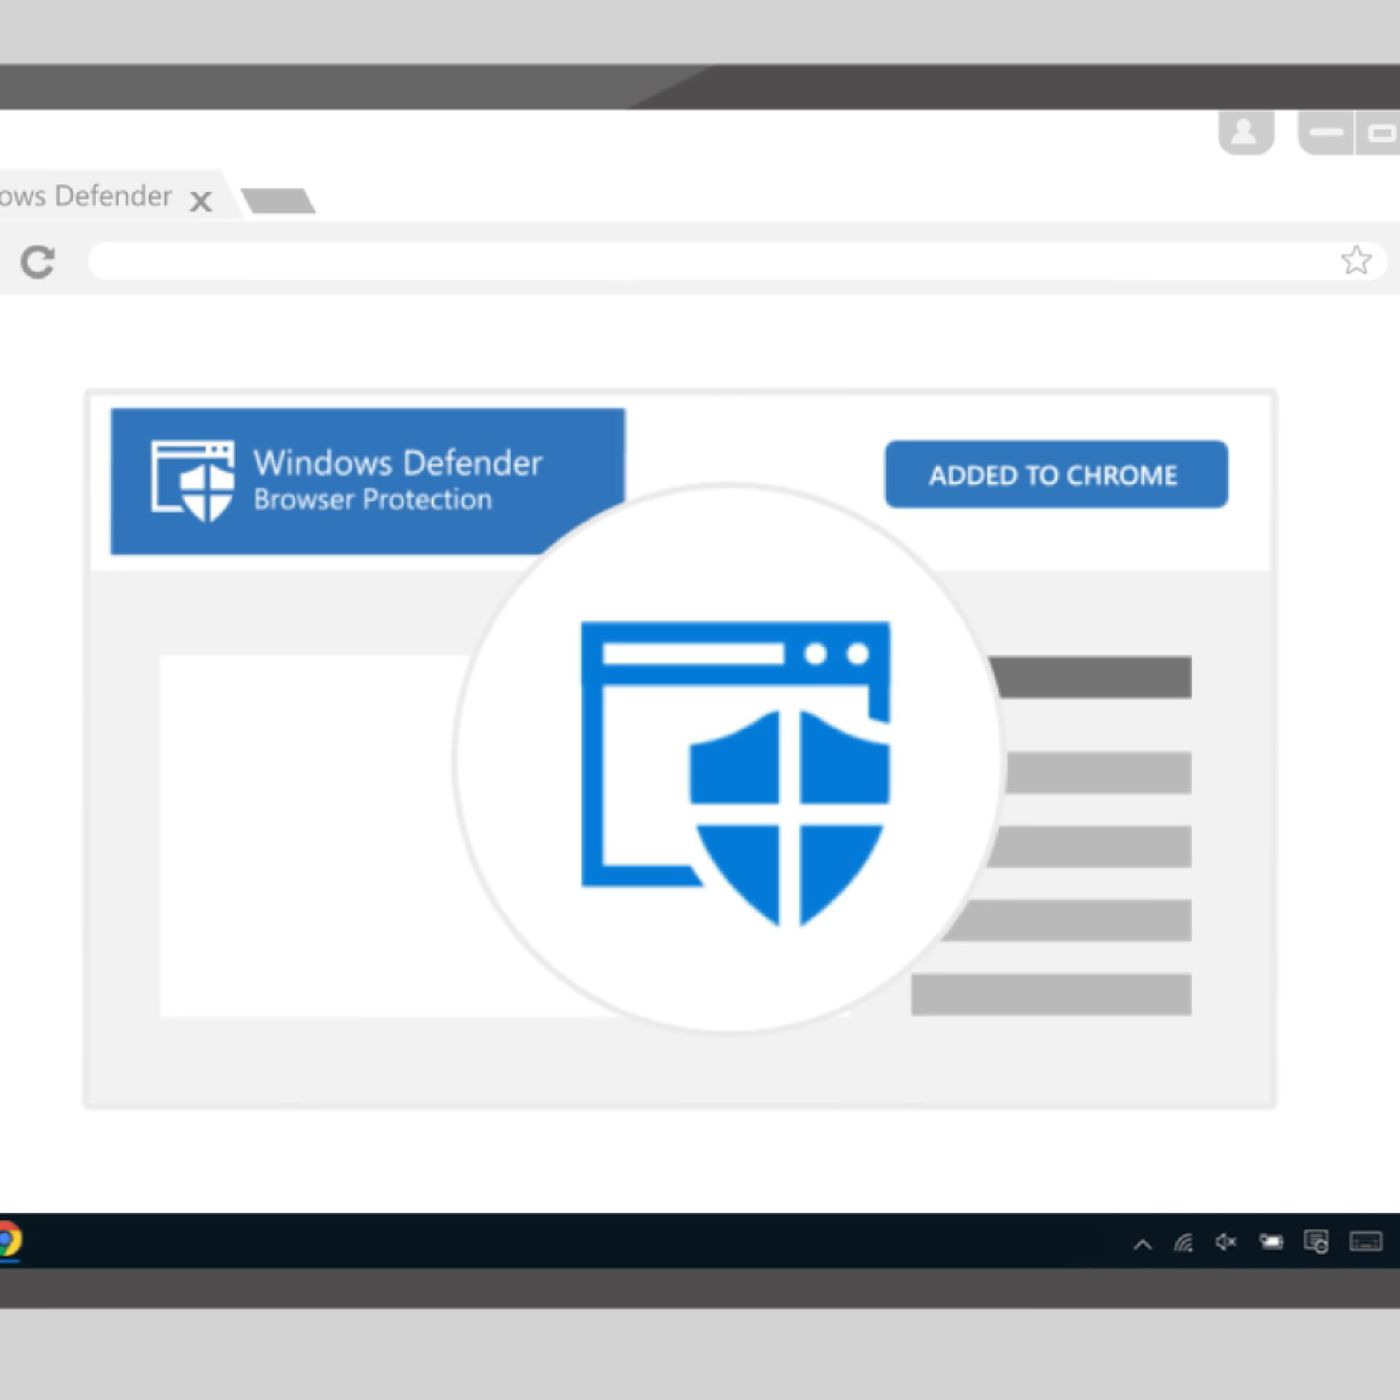 Microsoft brings its antivirus protection to Google's Chrome browser